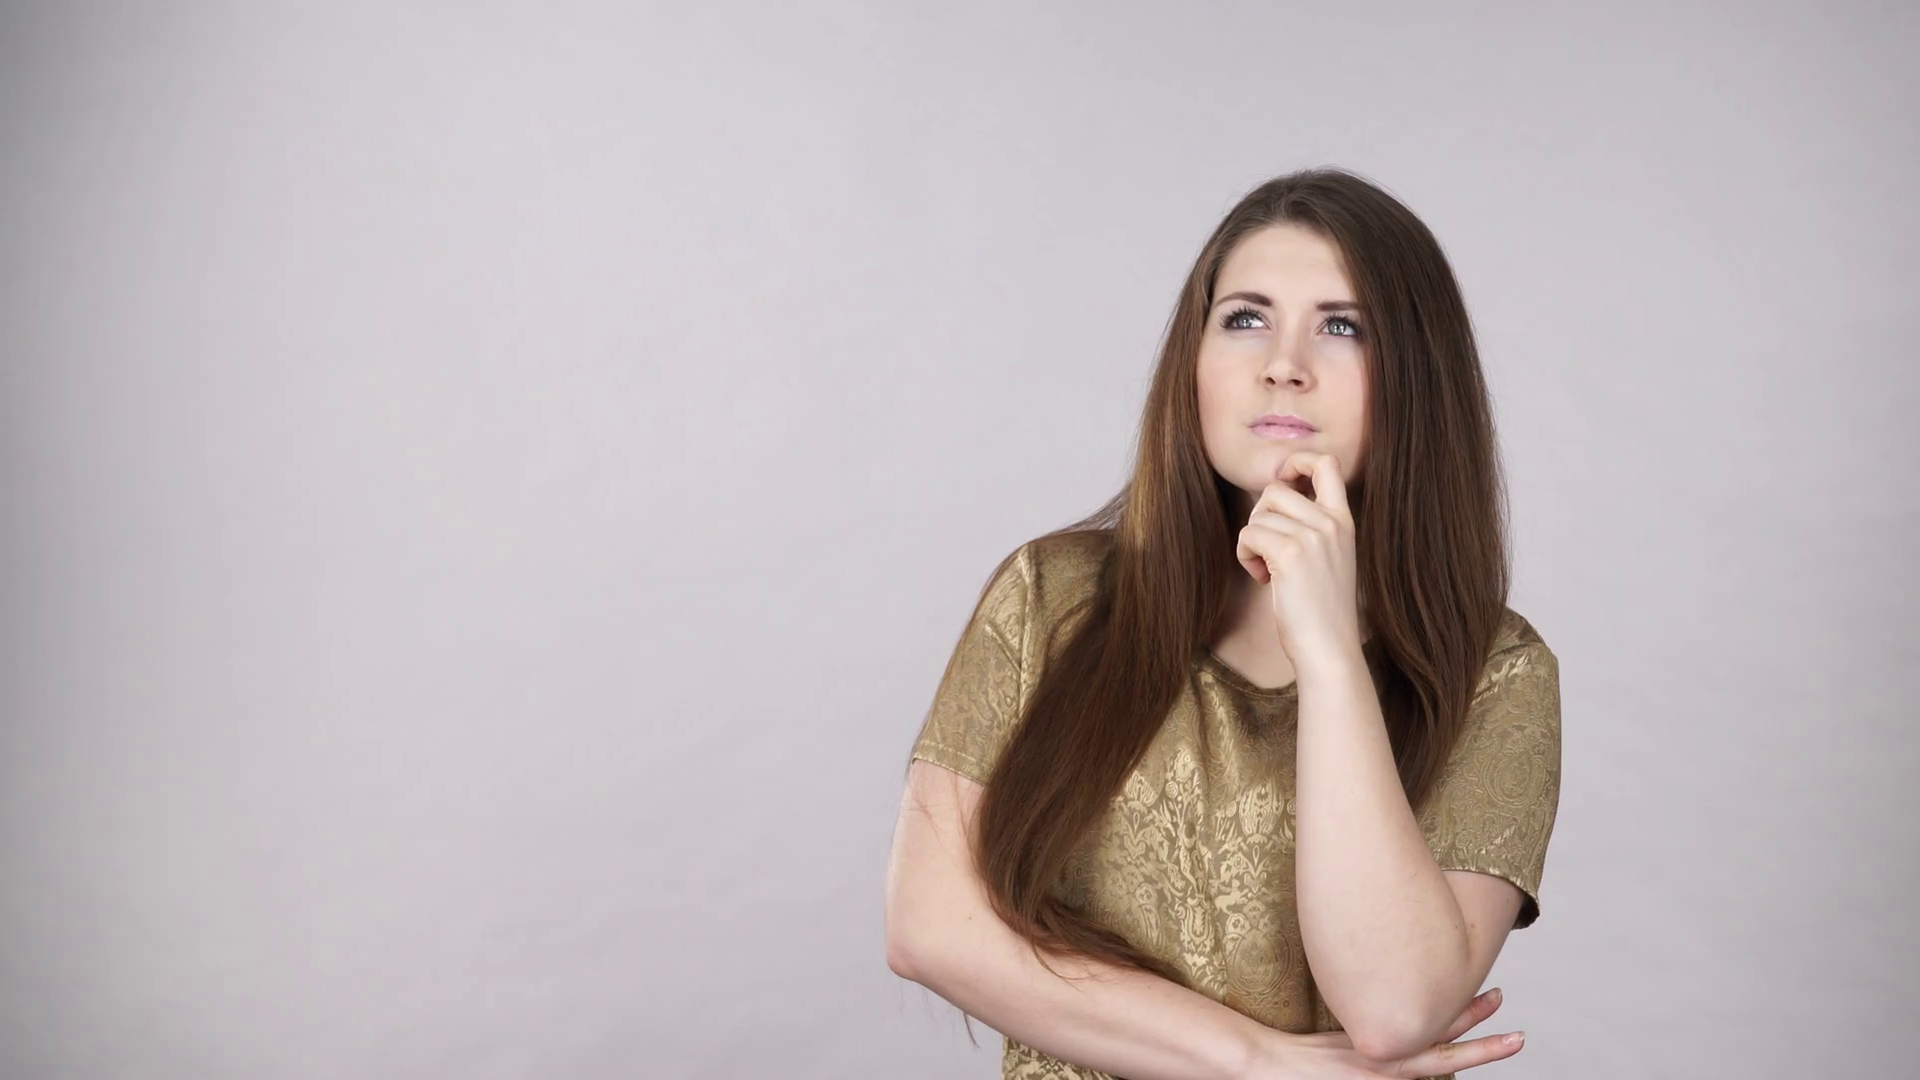 Woman Confused Thinking Seeks A Solution. Pensive Thoughtful Girl Coming Up  With An Idea, Pointing With Finger At Copyspace, Giving Thumb Up Gesture  Sign. - Girl Thinking PNG HD